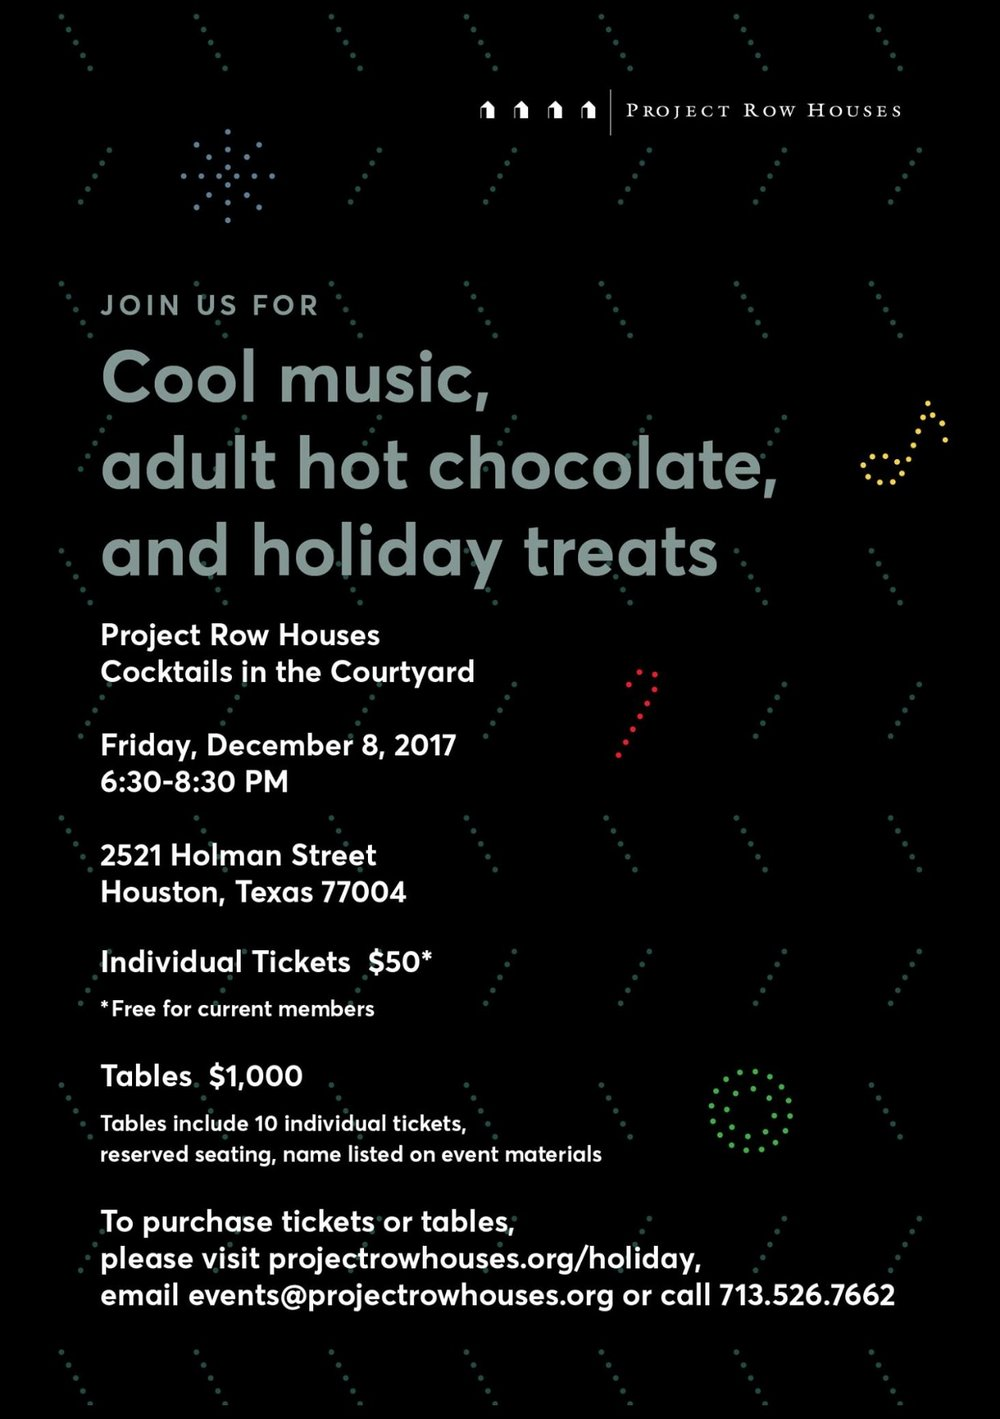 Join us for  Cool music, adult hot chocolate, and holiday treats  Cocktails in the Courtyard  Friday, December 8  6:30-8:30 PM  2521 Holman Street .